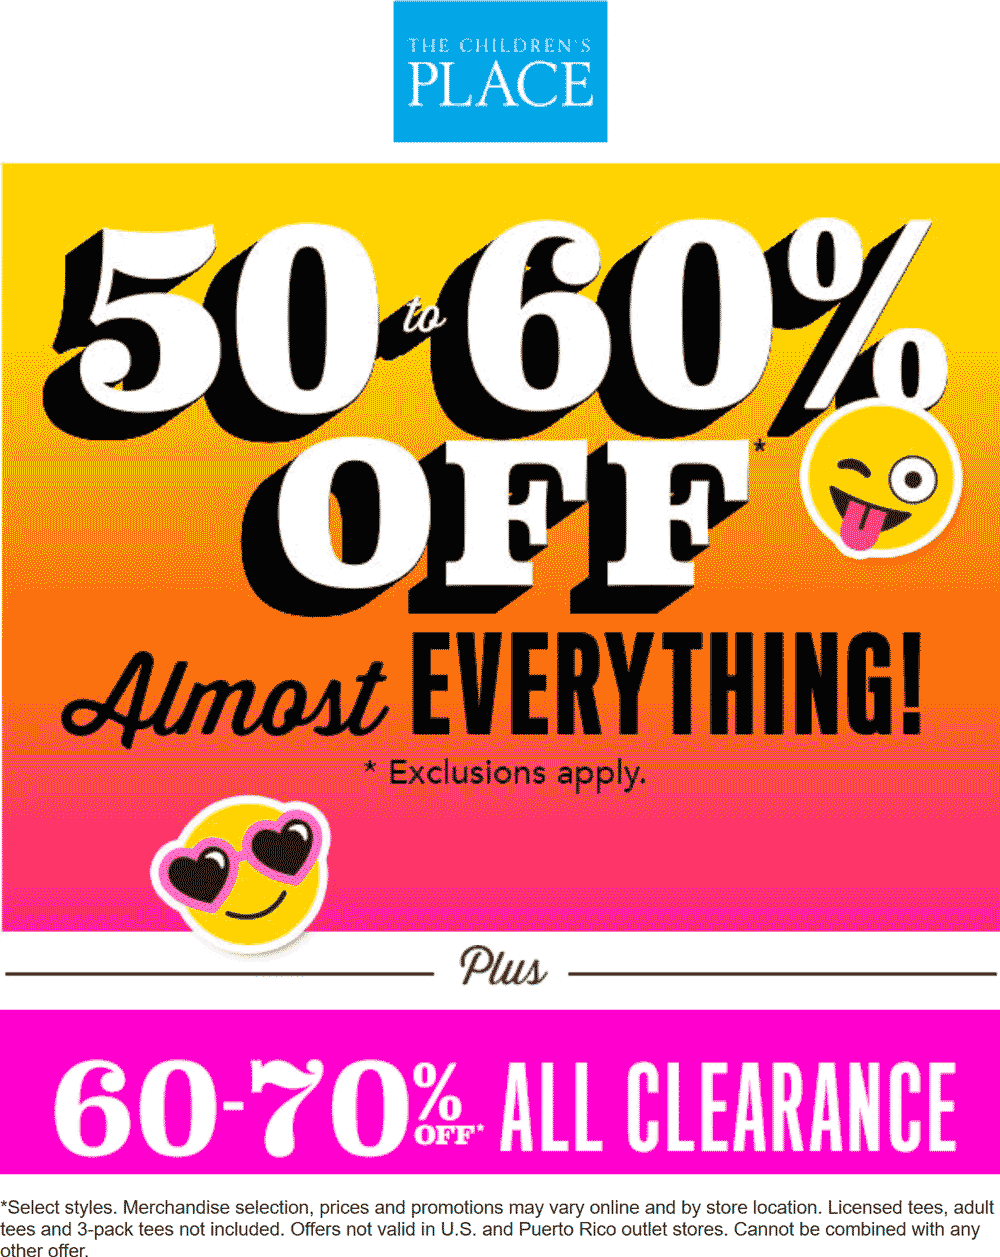 Children's place coupon code 50 off 2018